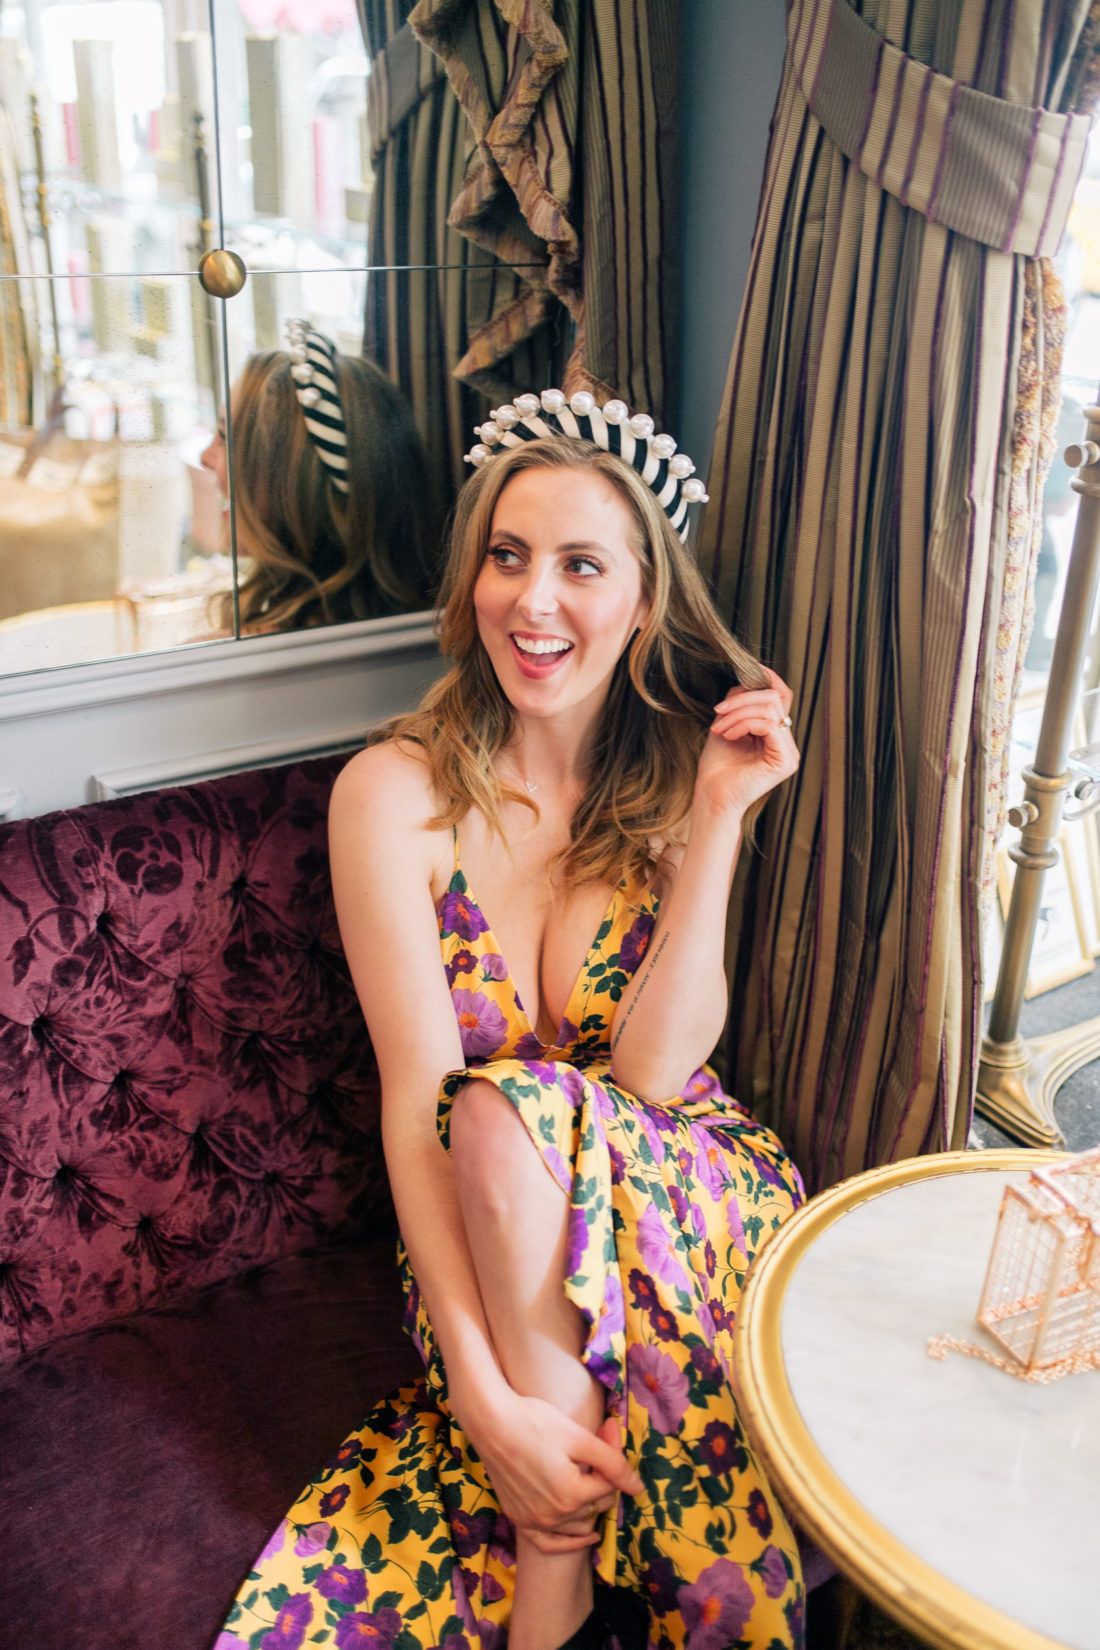 Eva Amurri Martino wears a bright flowery dress and a statement headband at Ladurée on the Upper East Side